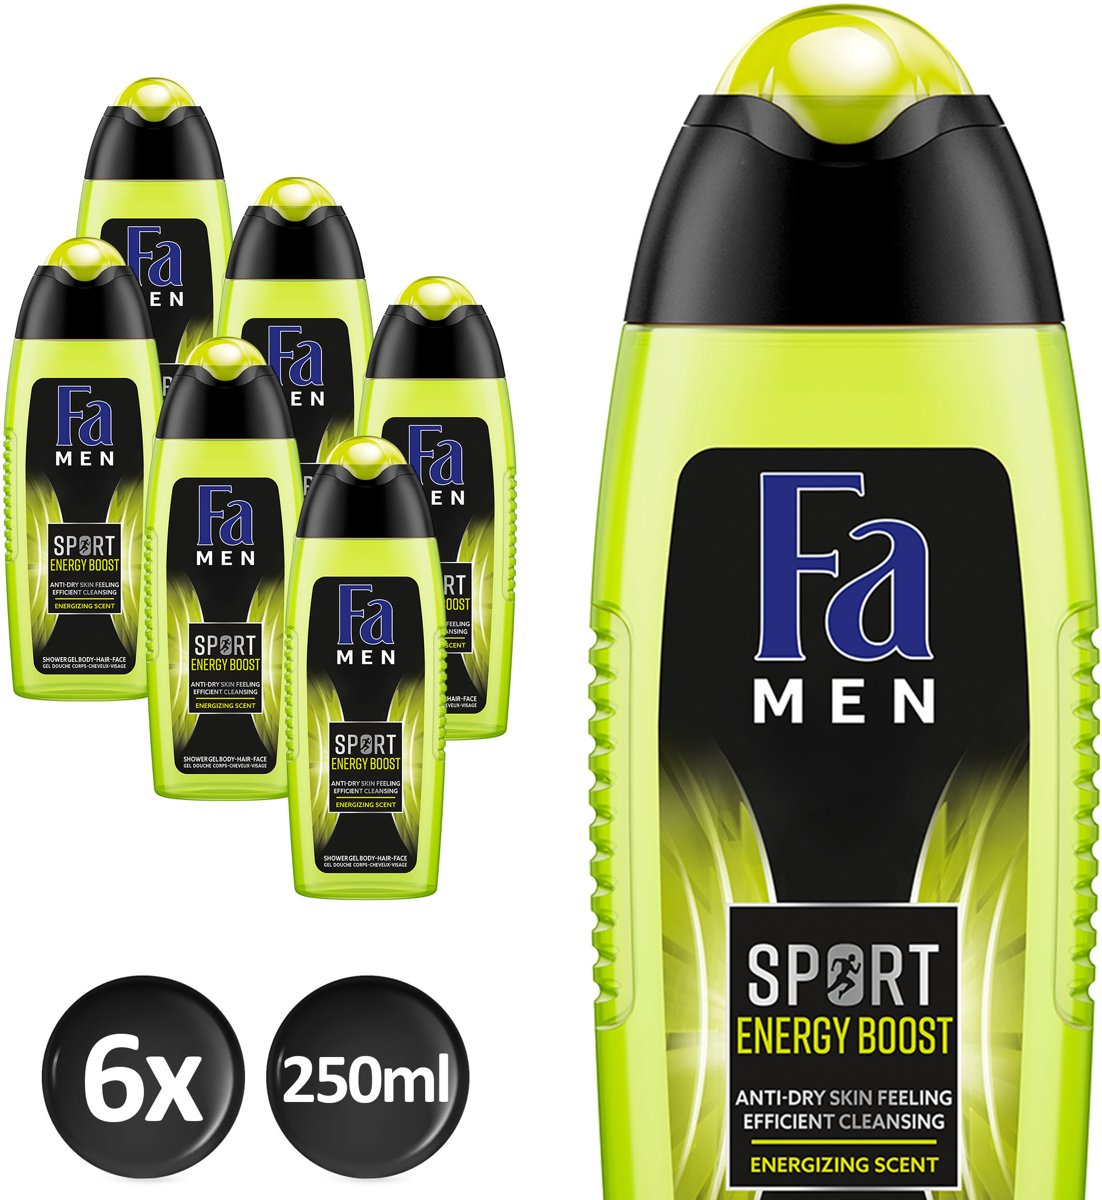 Fa Men Sport Double Power Power Boost - 6x 250 ml - Voordeelverpakking - Douchegel